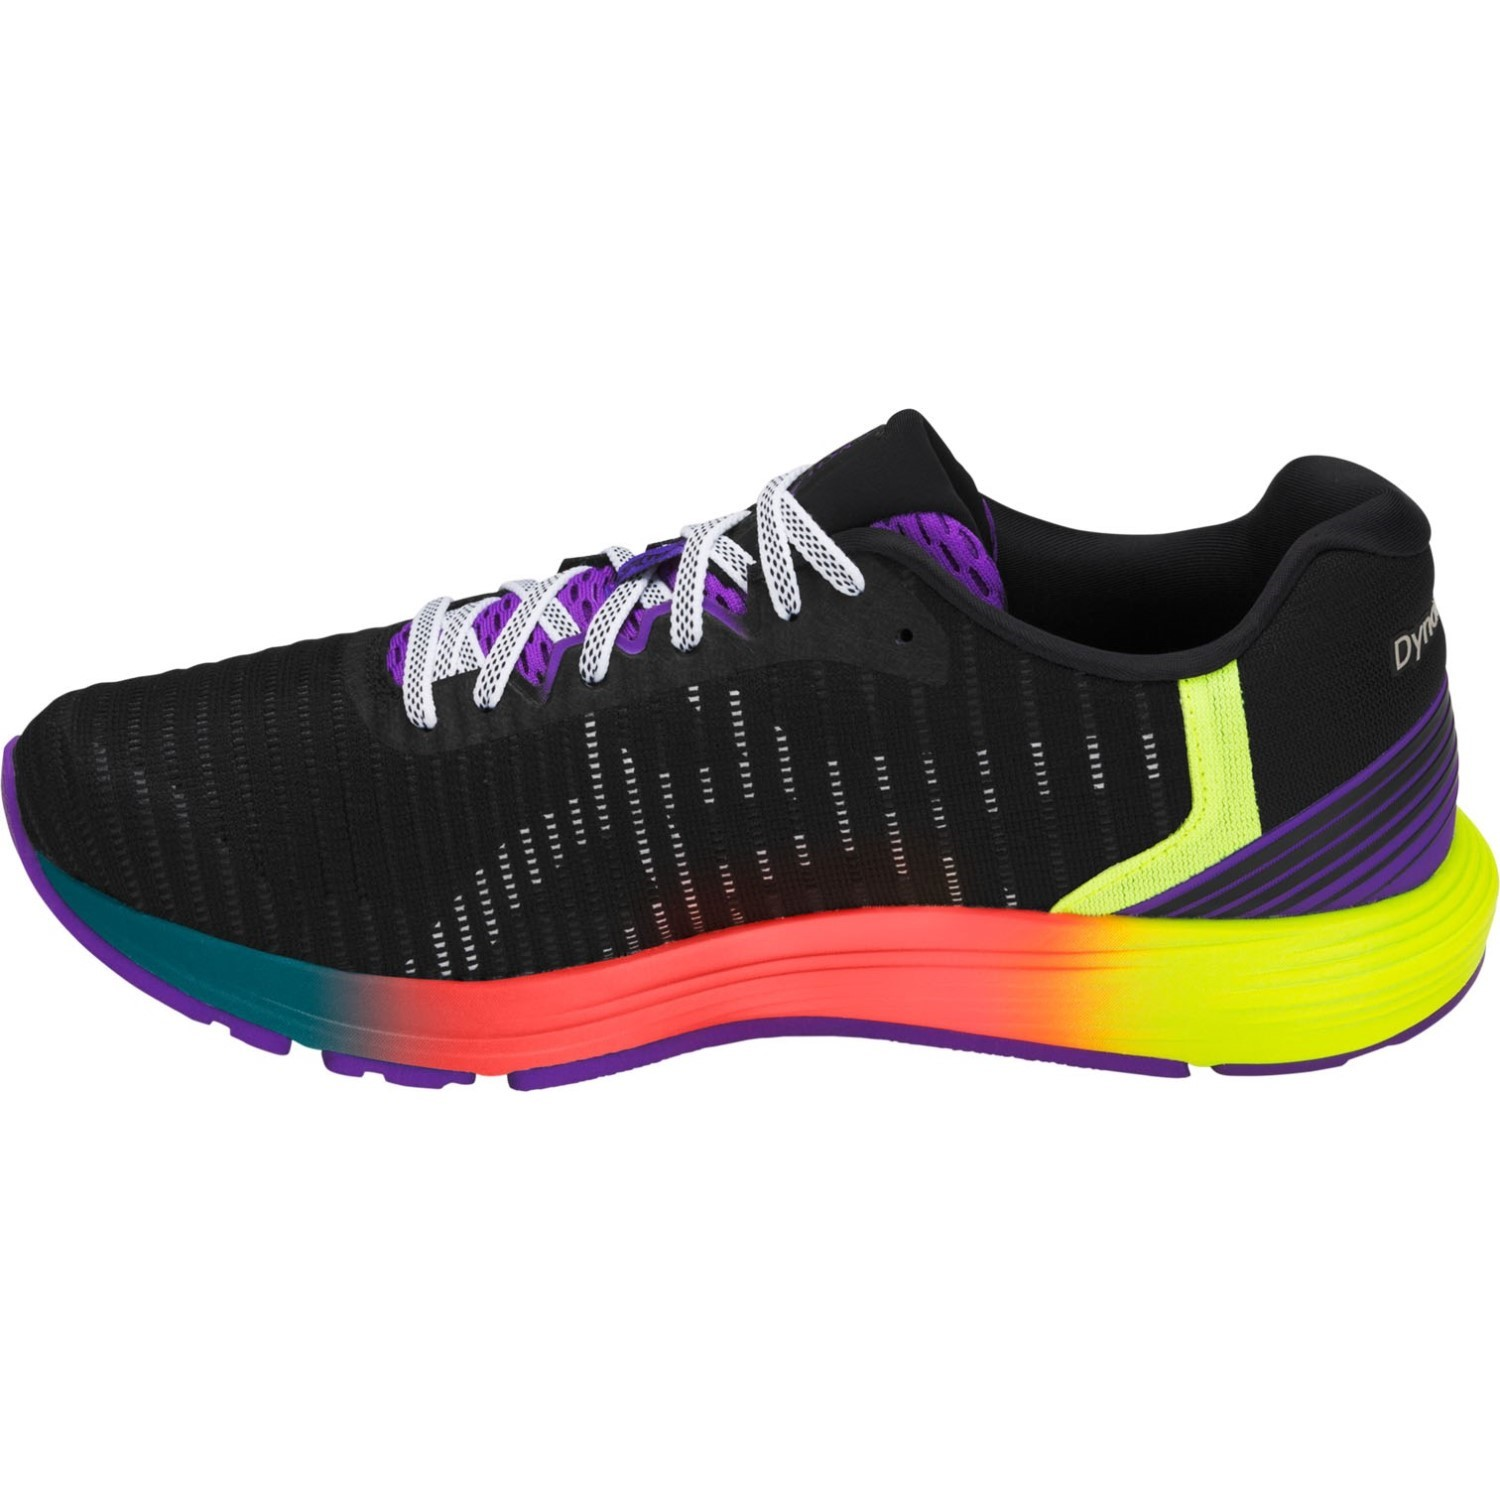 Asics DynaFlyte 3 Rise Bryte Mens Running Shoes